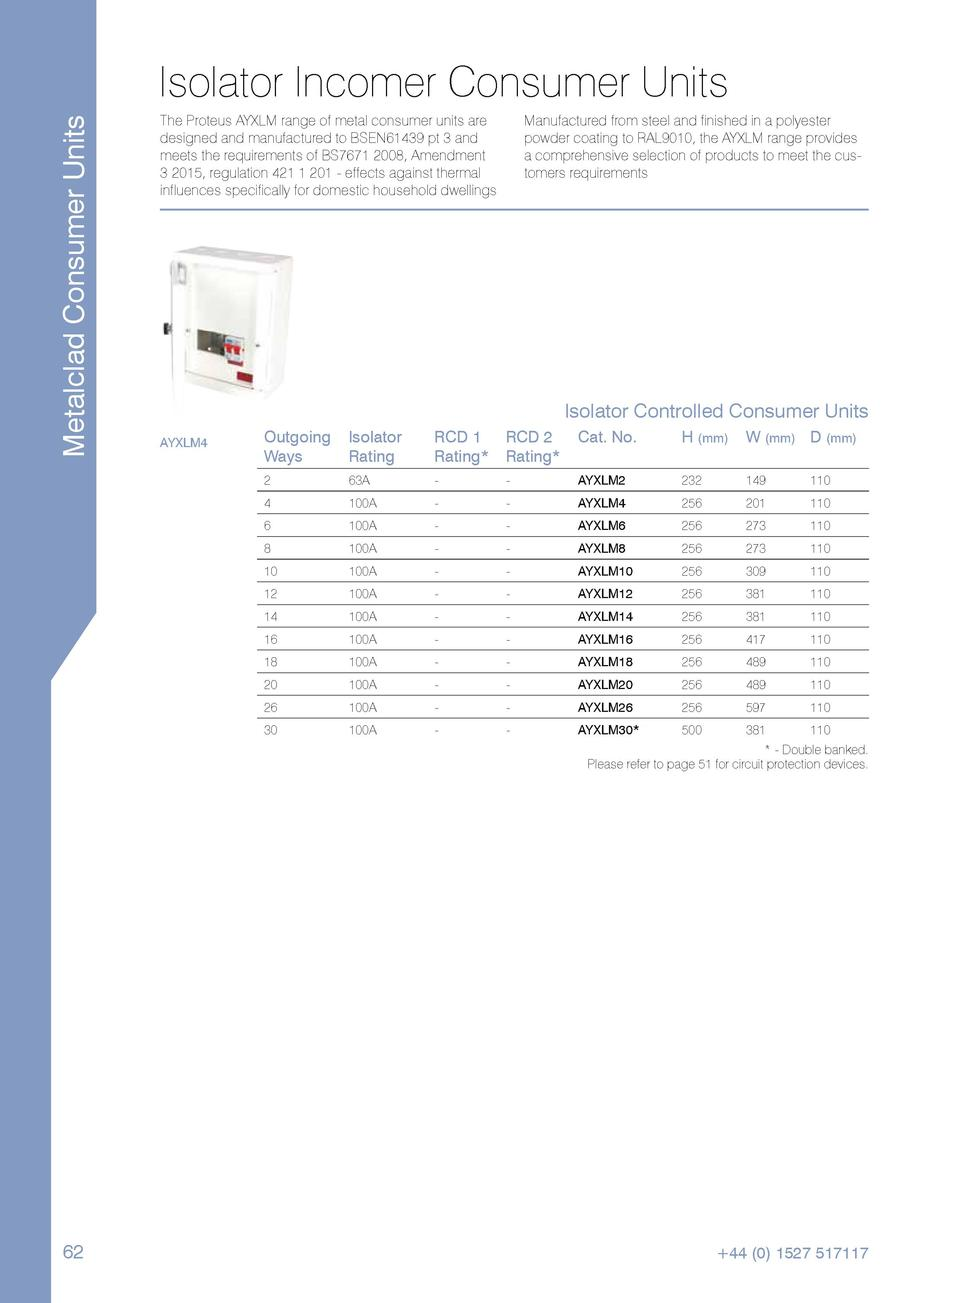 Metalclad Consumer Units  Isolator Incomer Consumer Units The Proteus AYXLM range of metal consumer units are designed and...